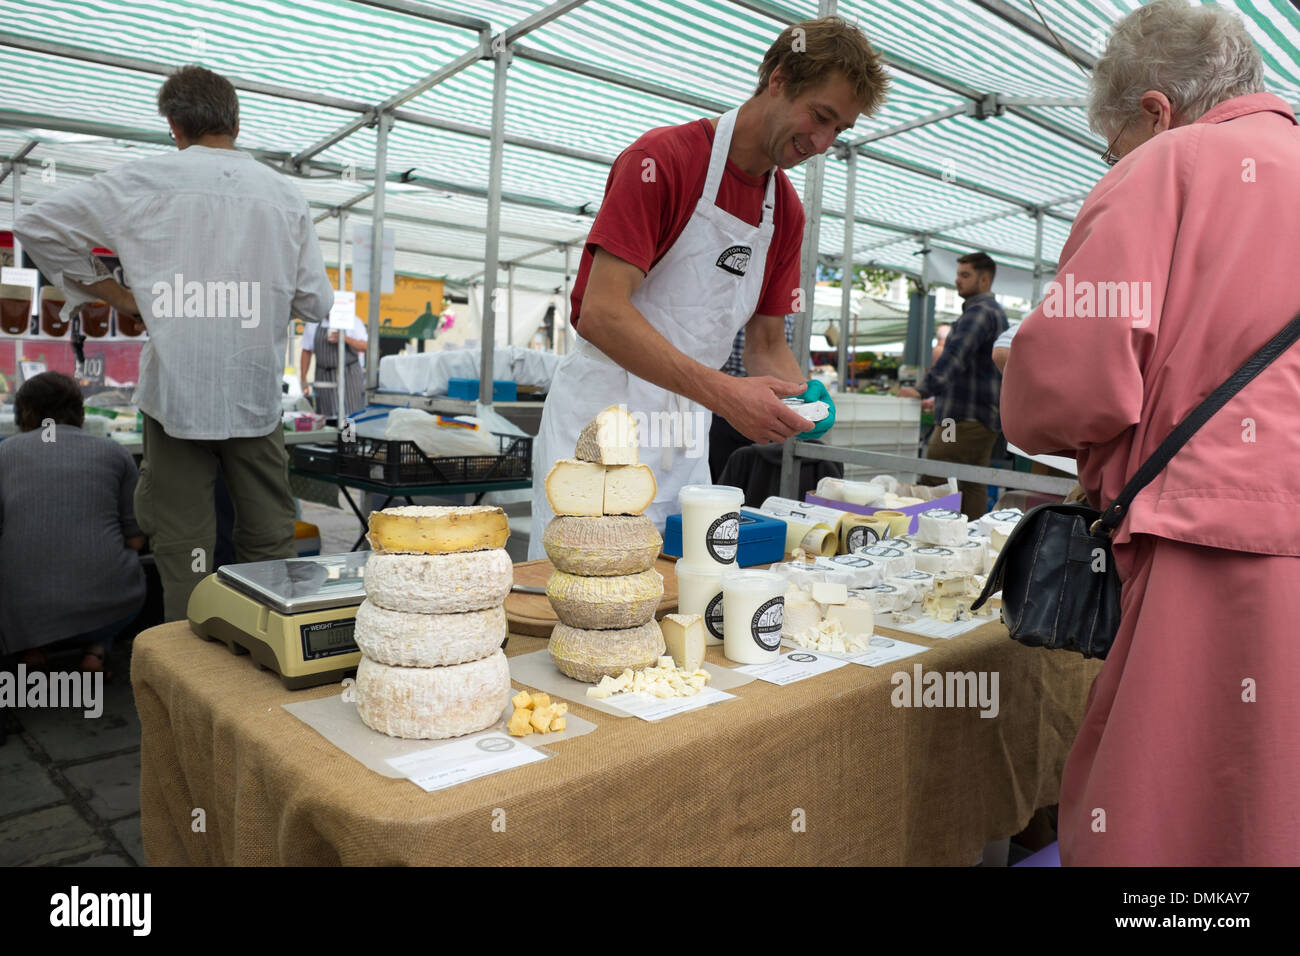 Artisan cheese maker for sale farmers market - Stock Image